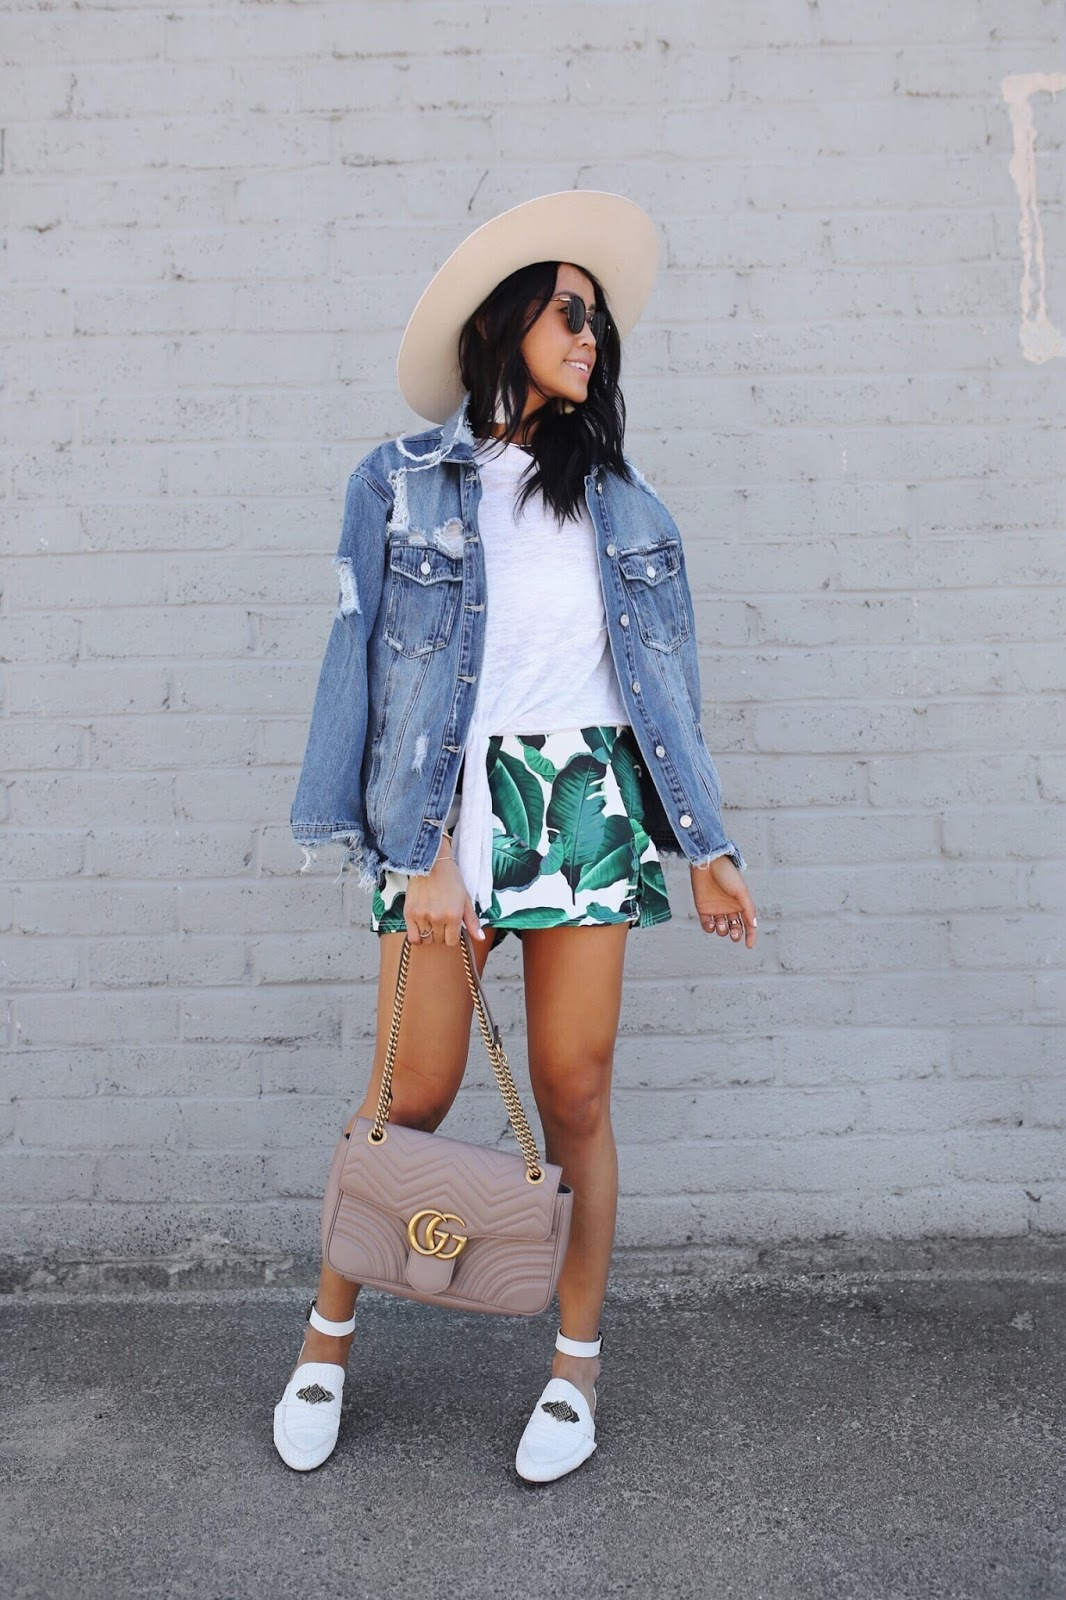 How to Style Denim Jacket for Summer